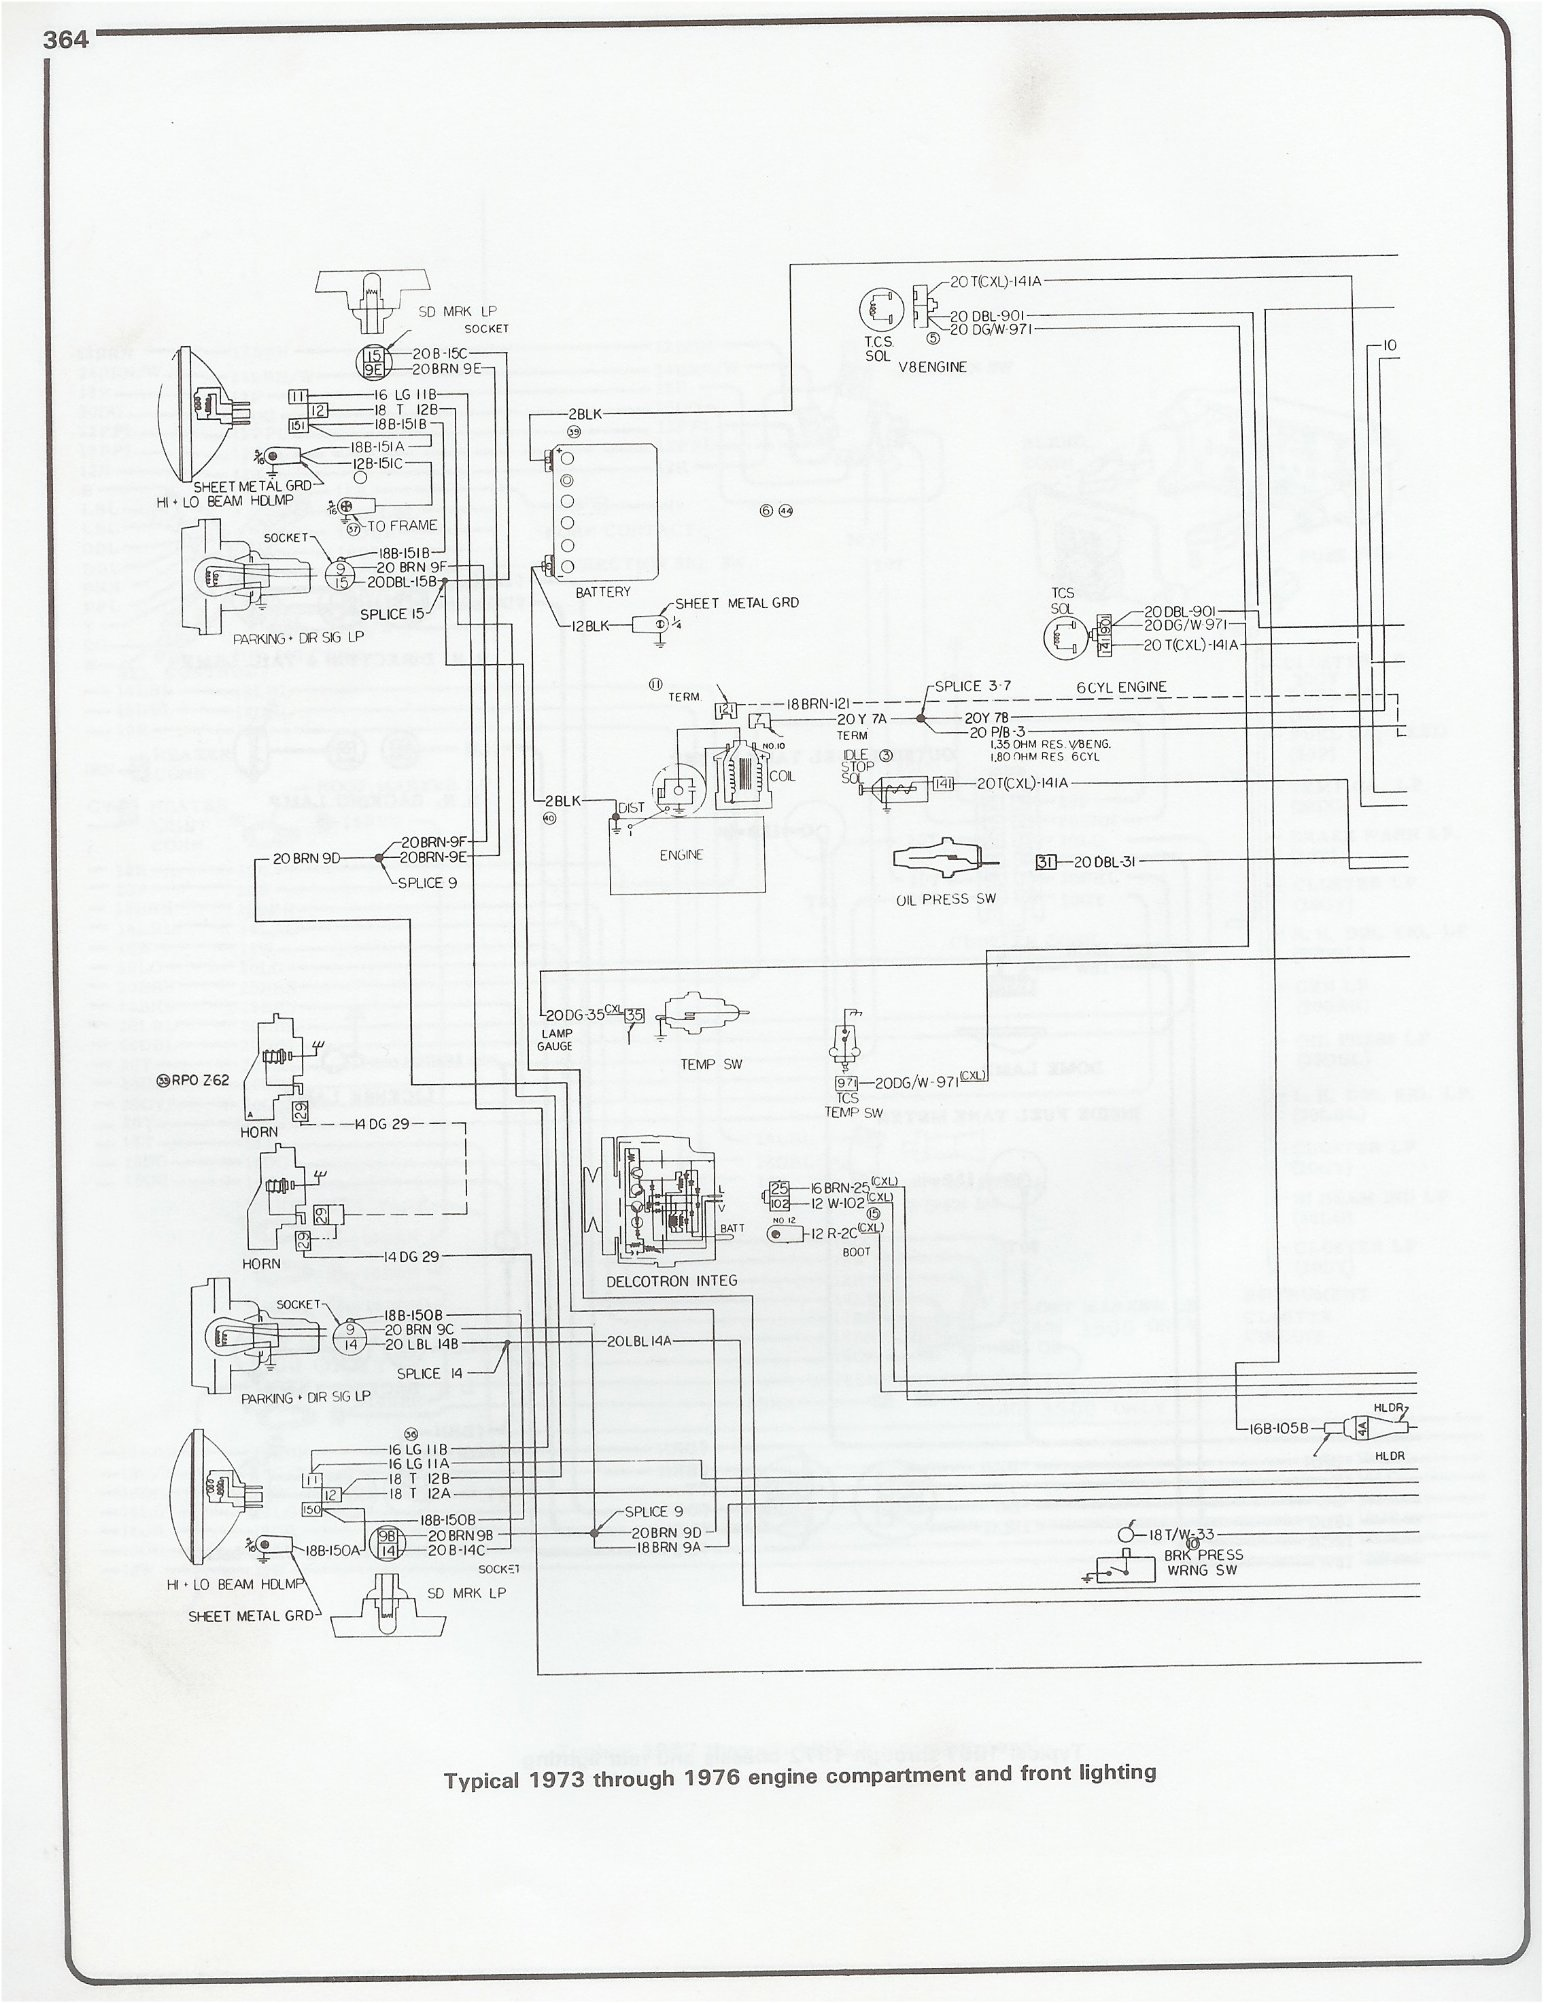 chevy c10 radio wiring diagram wire center \u2022 1947 chevy diagrams complete 73 87 wiring diagrams rh forum 73 87chevytrucks com 1981 chevy c10 radio wiring diagram